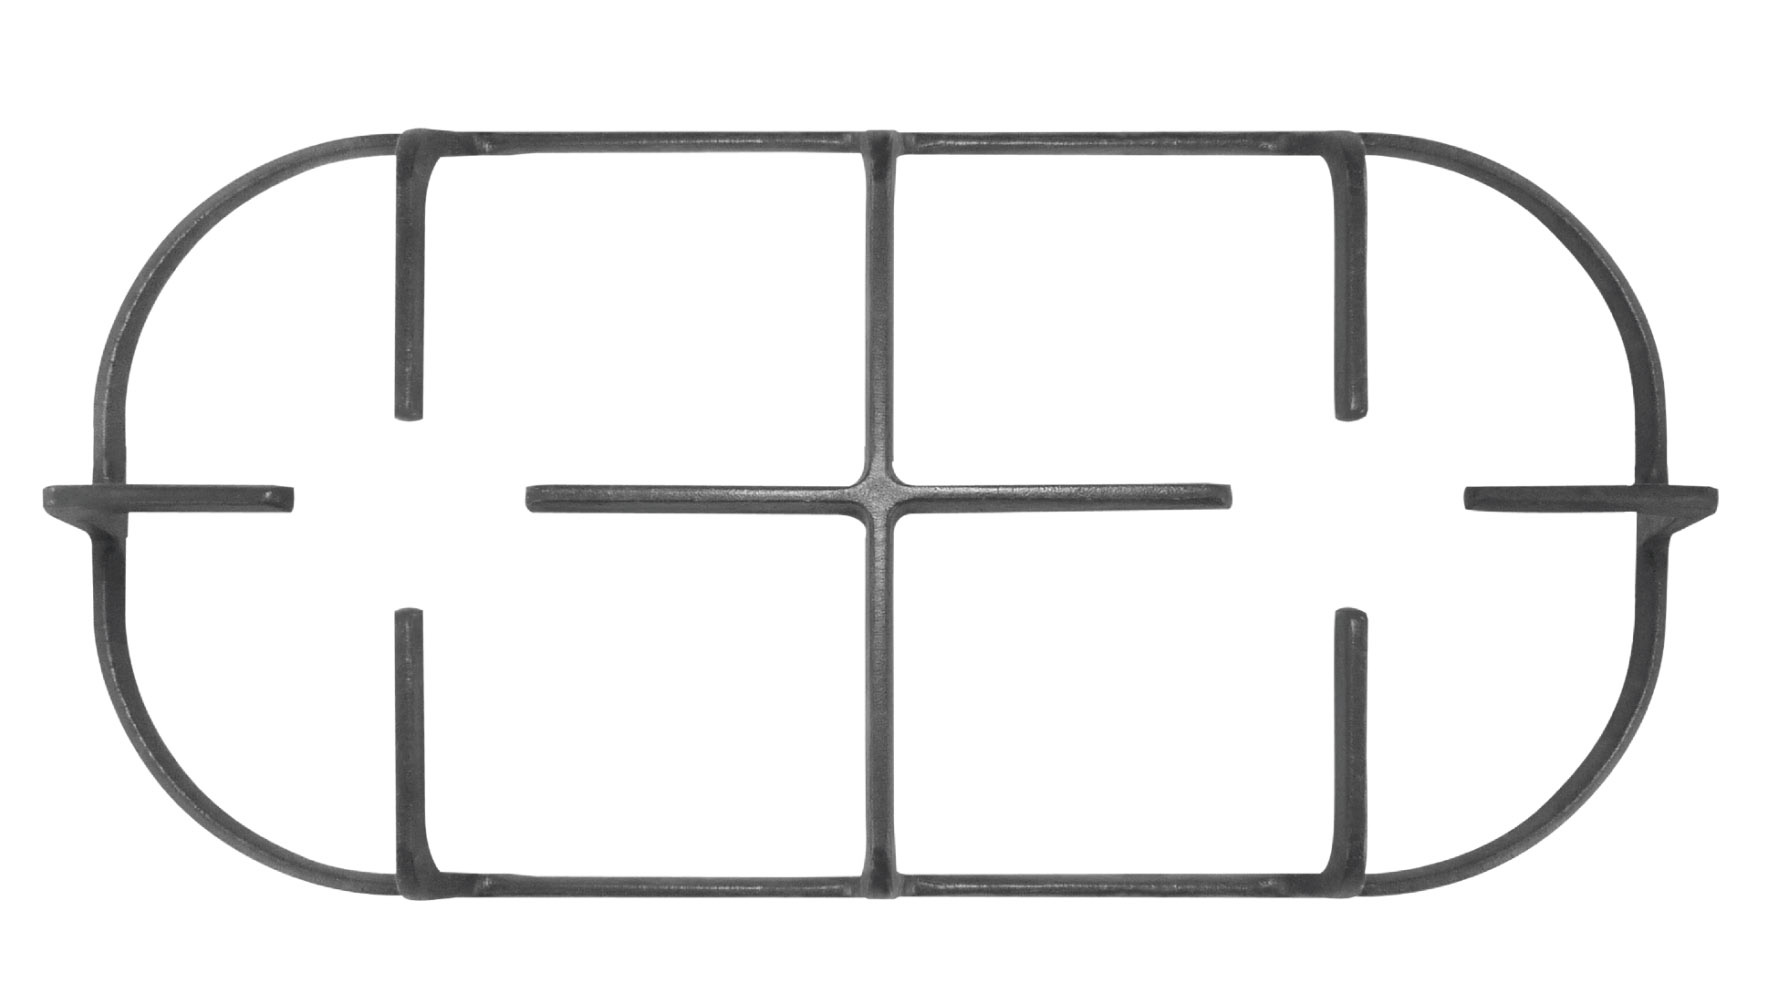 Three cast iron grates (low)